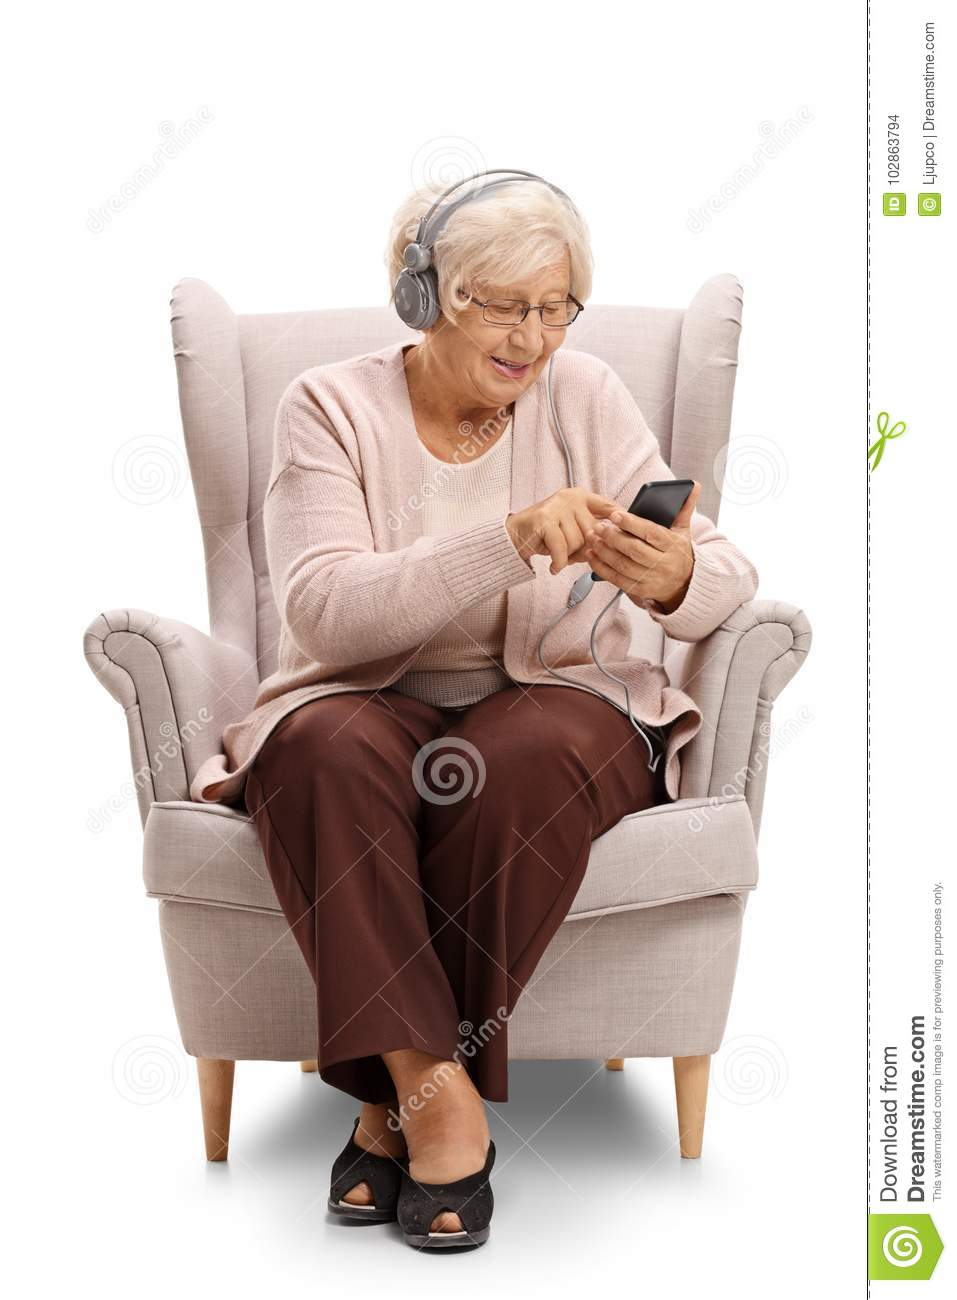 Elderly woman sitting in an armchair and listening to music on a